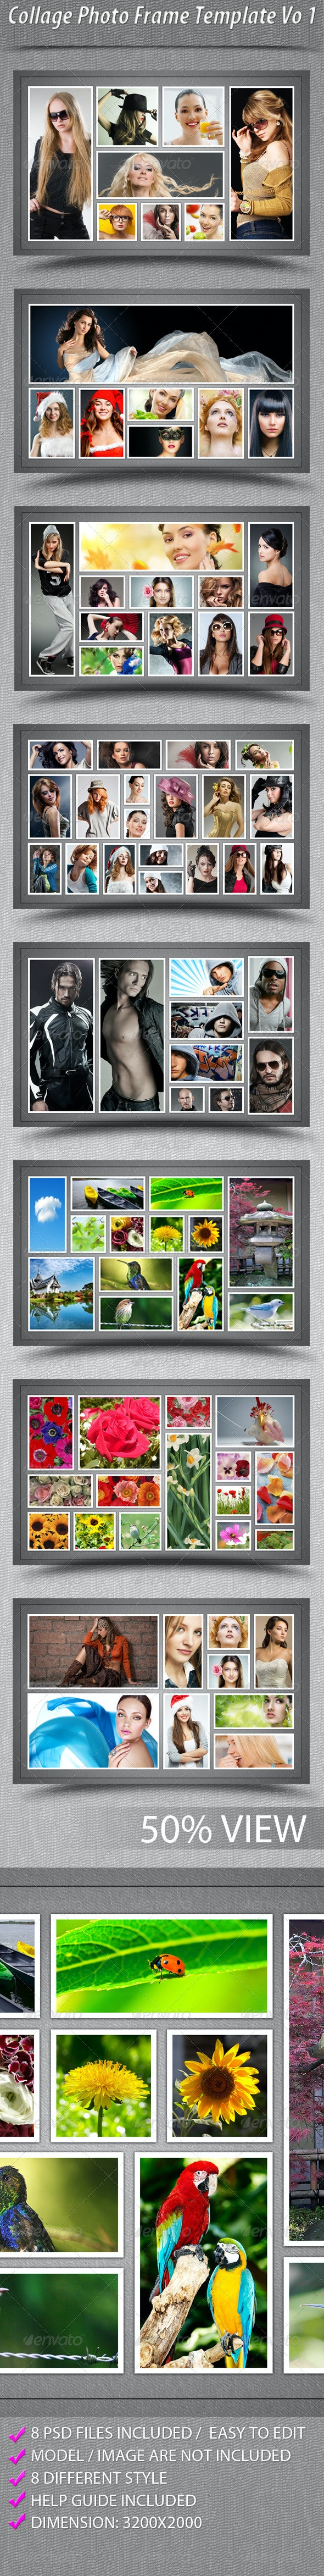 Collage Photo Frame Template Vo 1 - Photo Templates Graphics